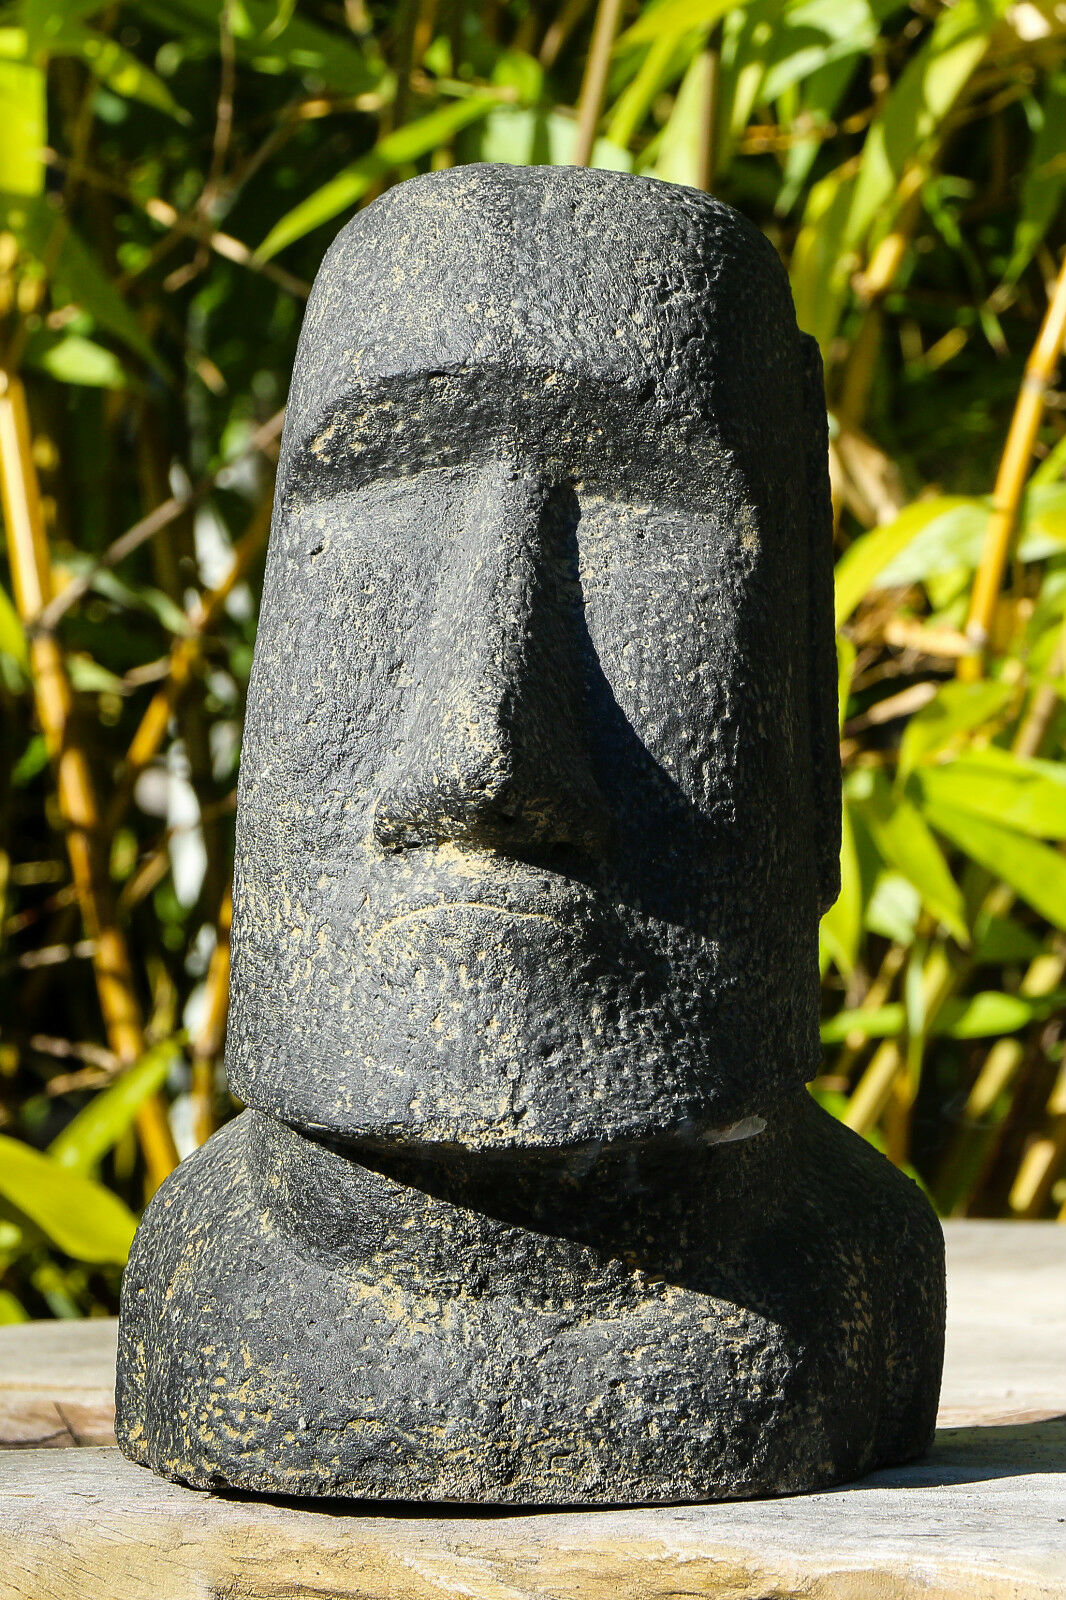 moai rapa nui tiki osterinseln lavastein statue skulptur dekoration garten deko eur 145 00. Black Bedroom Furniture Sets. Home Design Ideas